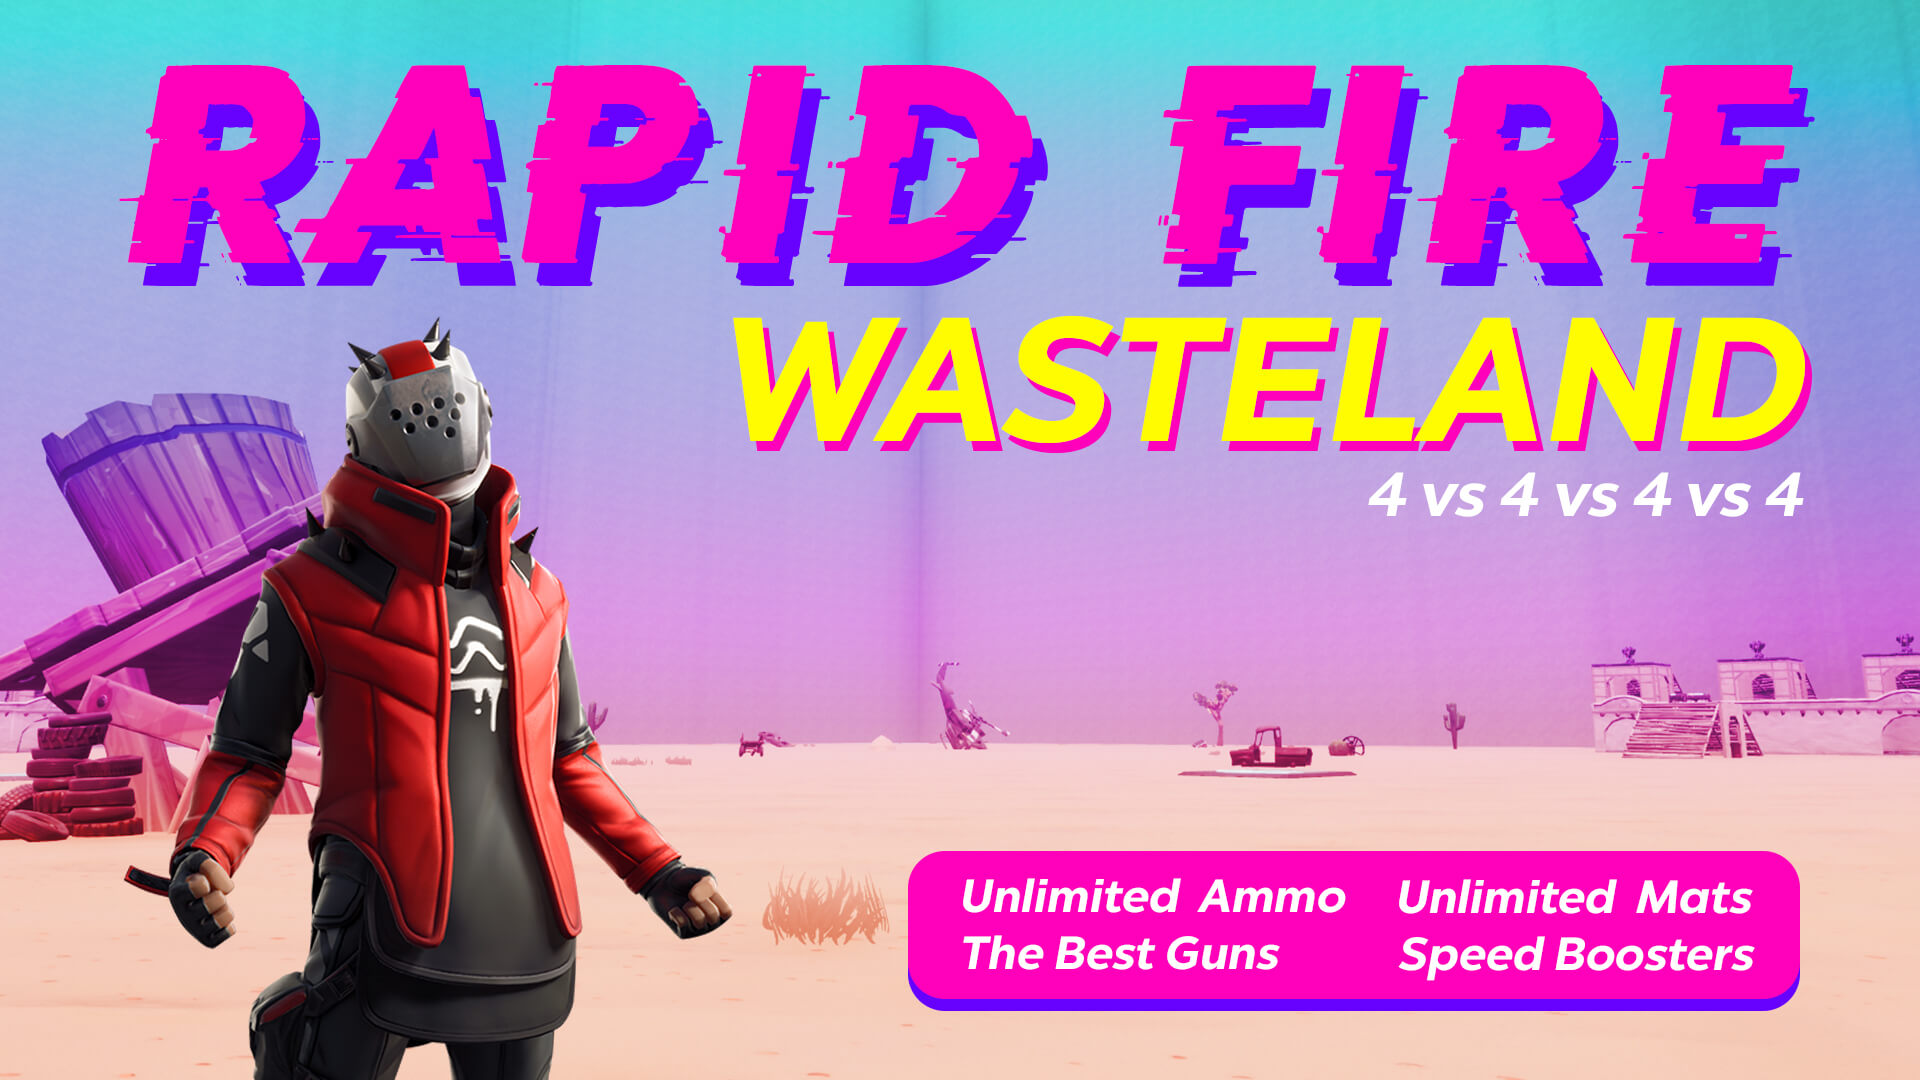 RAPID FIRE WASTELAND